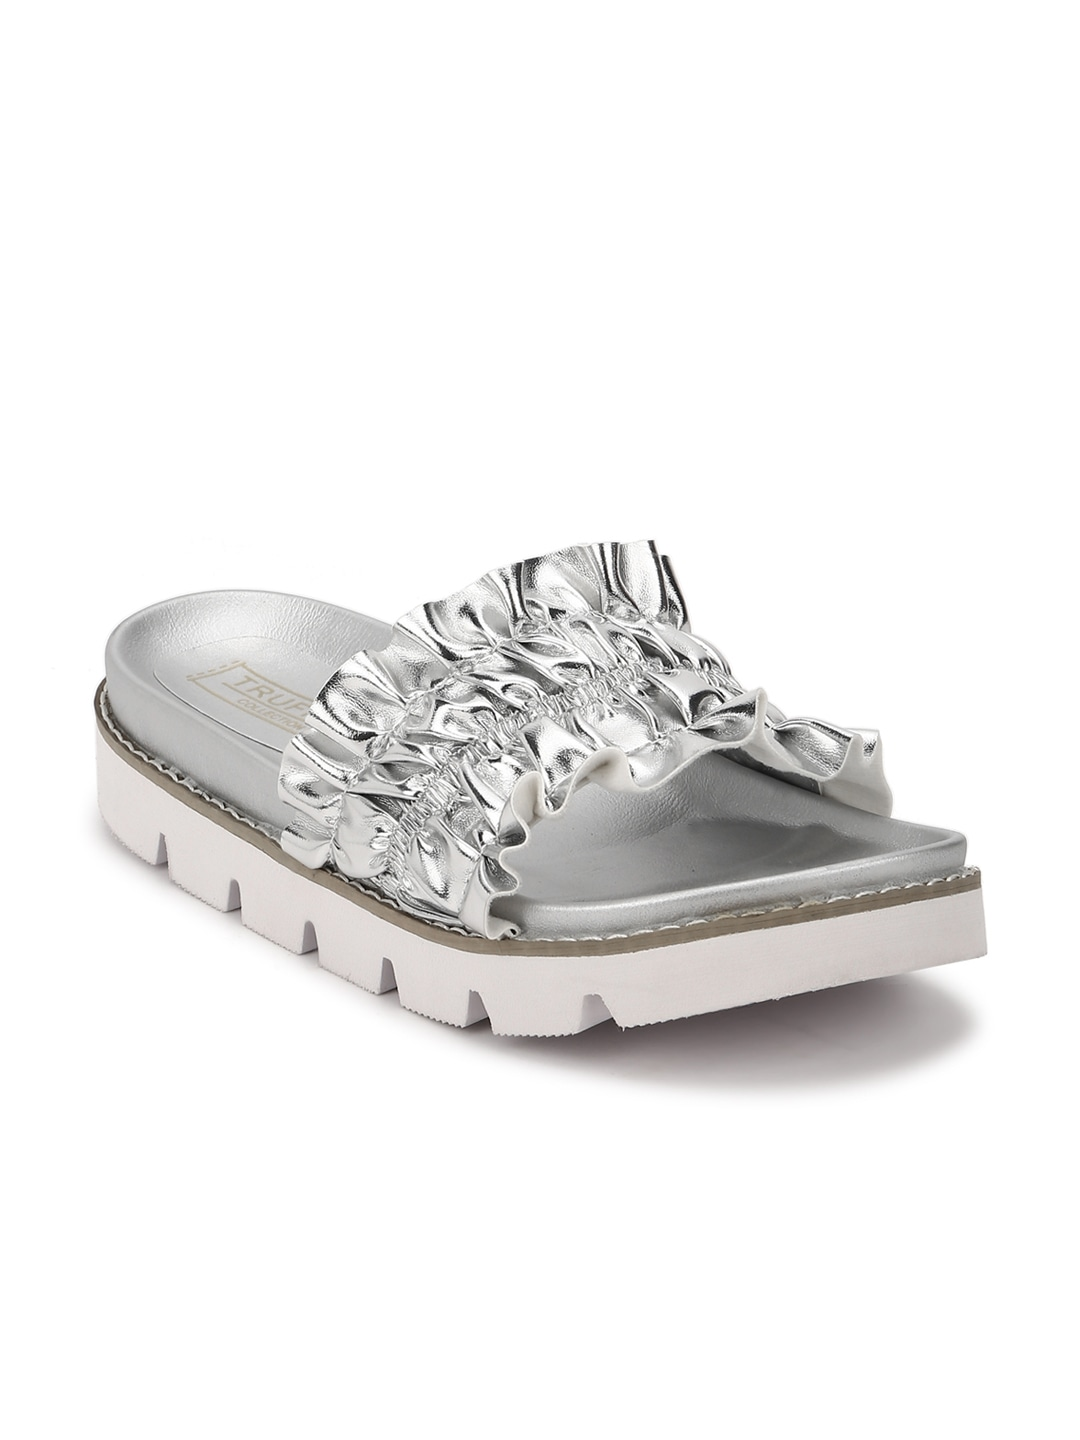 Silver-Toned Solid Synthetic Open Toe Flats